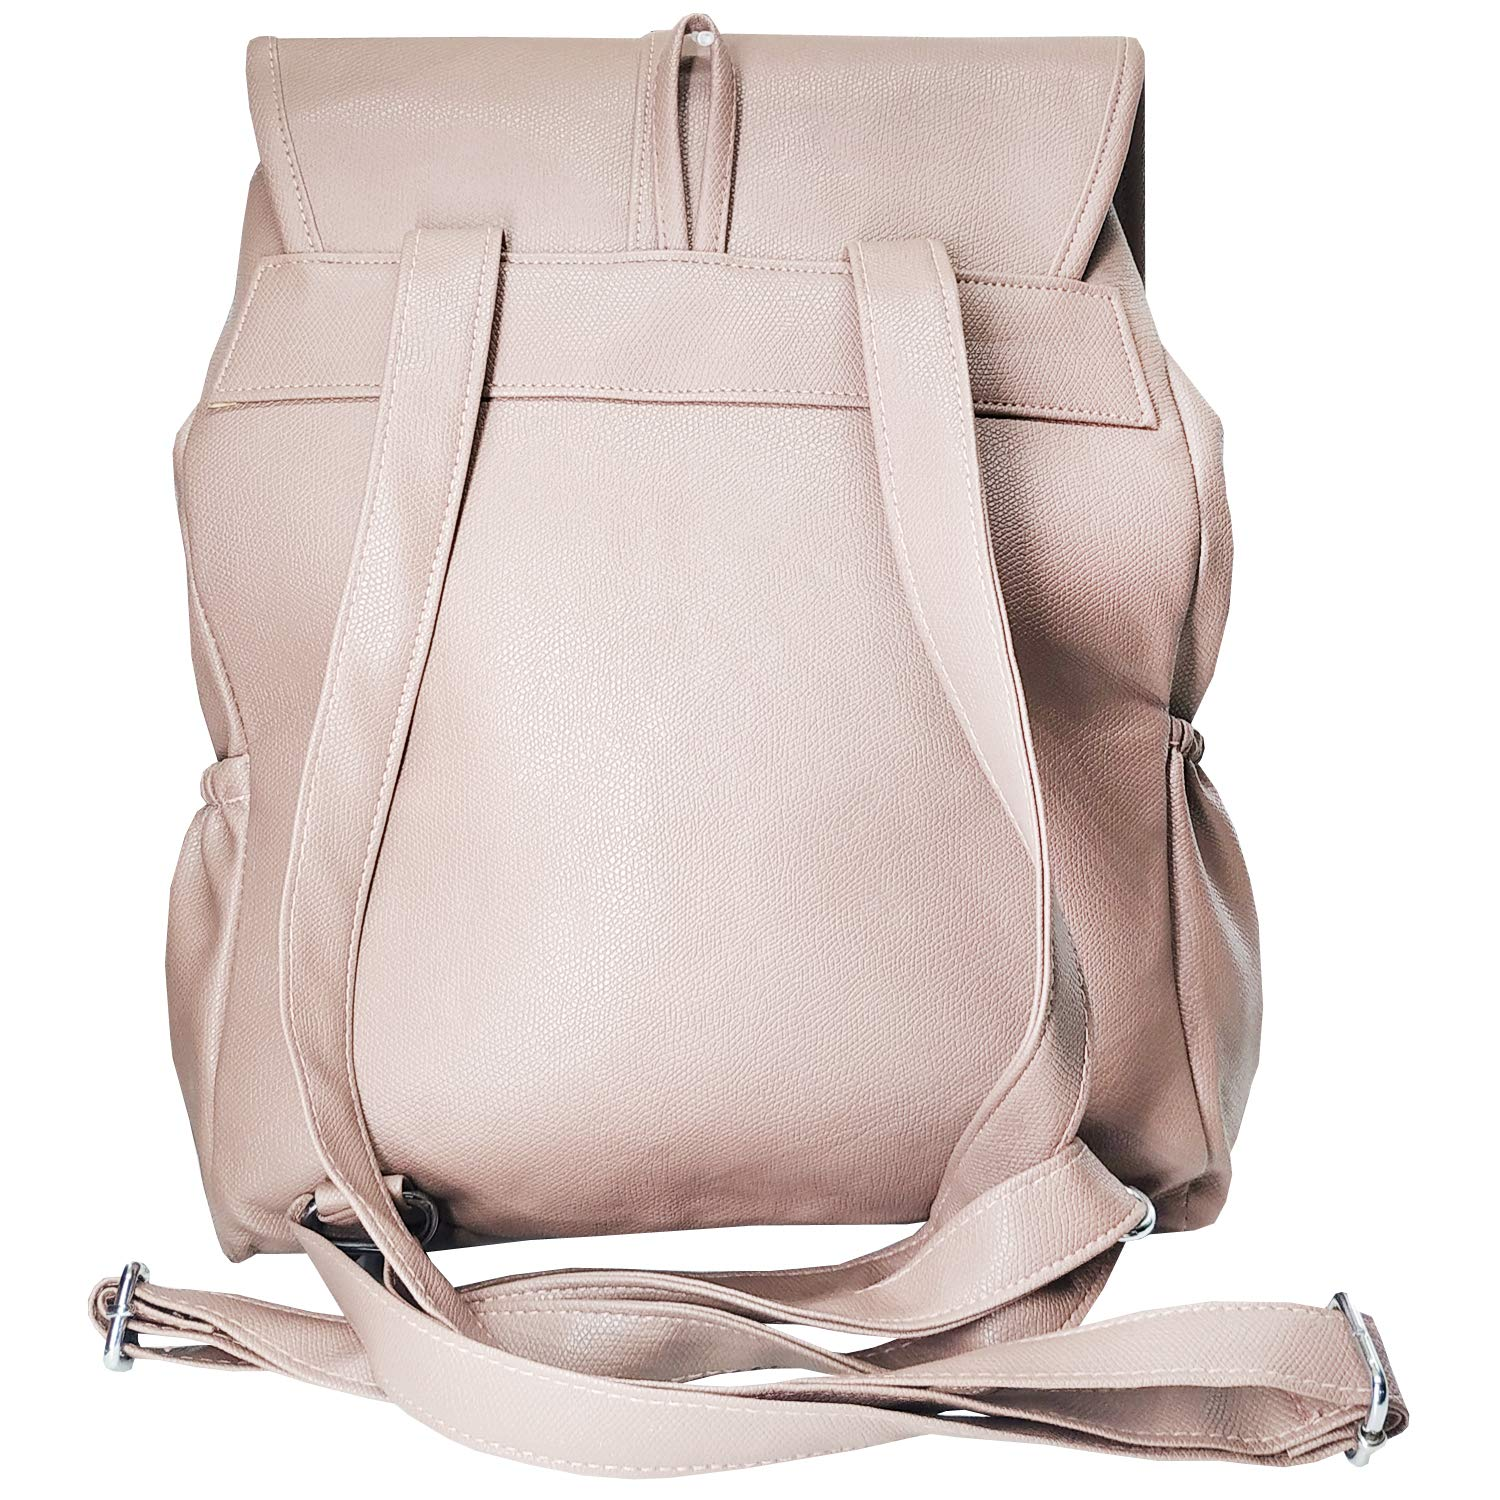 Artificial Leather Student Backpack For Girls (Beige) - Bagaholics Gift